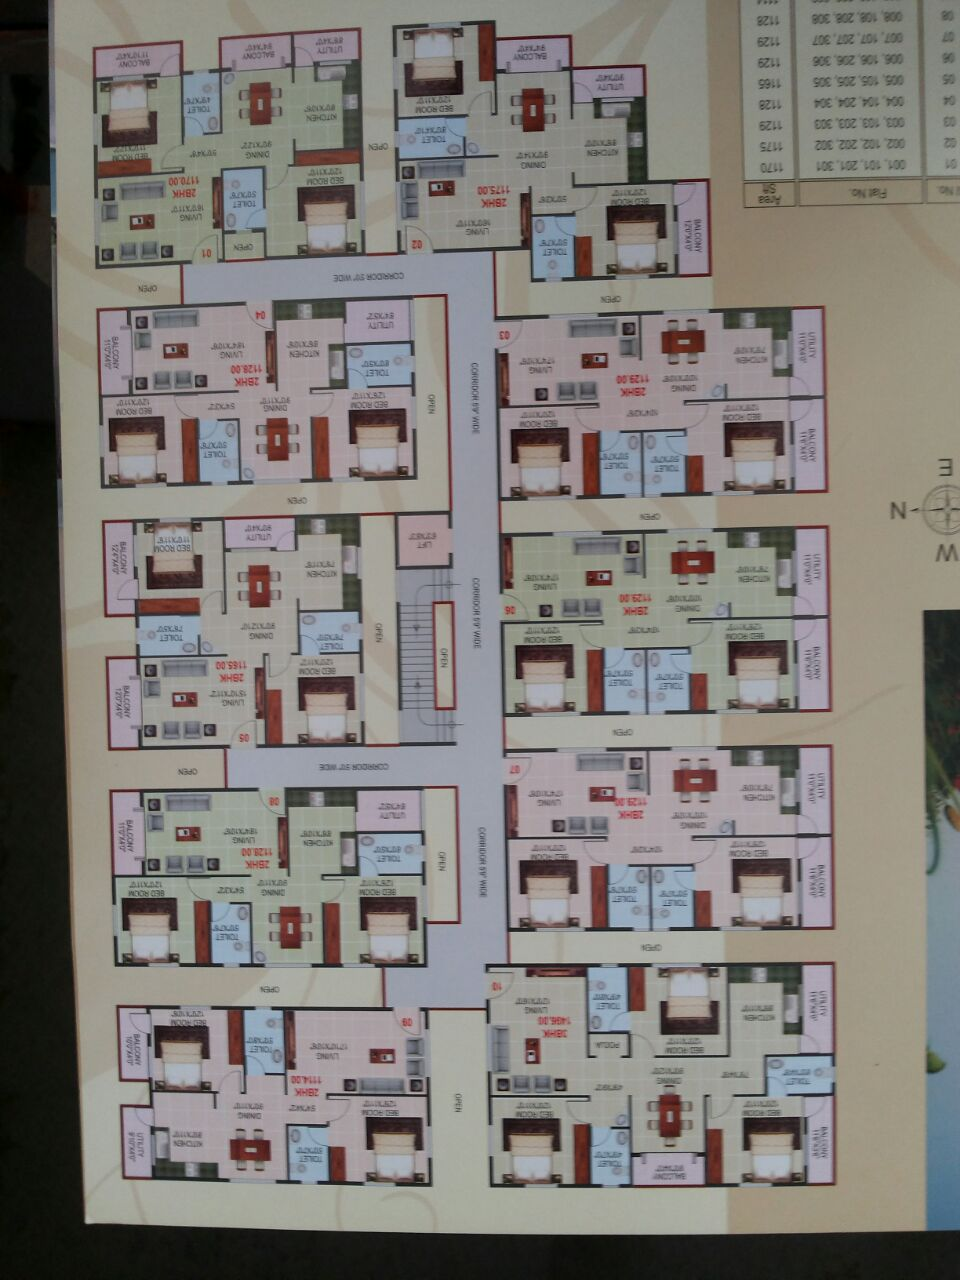 2 BHK apartment for sale in Whitefield, Bangalore.  Ready to move in 2 BHK apartments for sale in Whitefield. Flats for sale with all basic amenities near Hopefarm Signal.